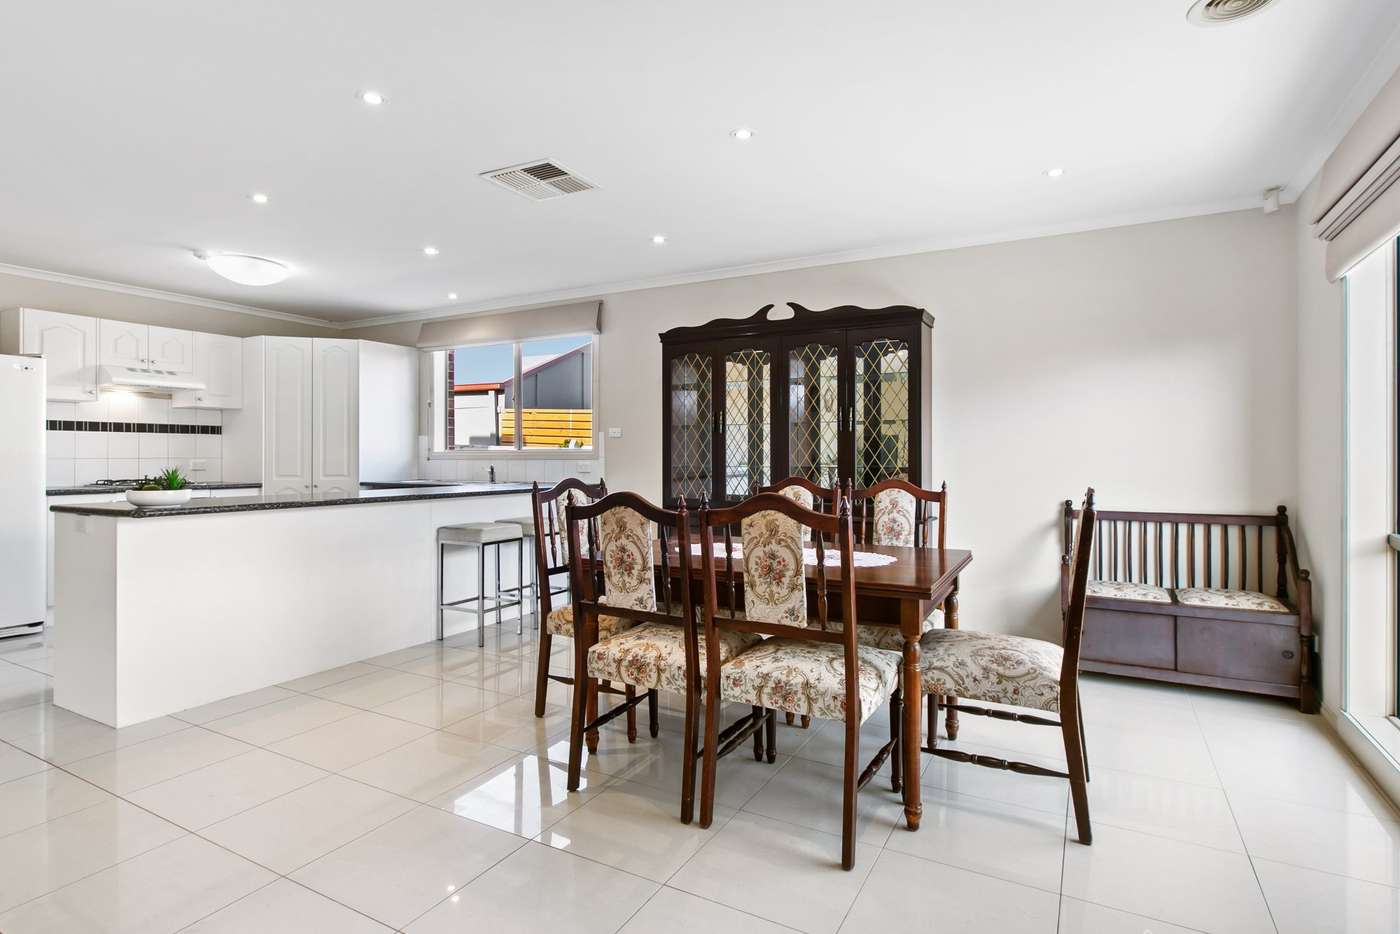 Fifth view of Homely house listing, 4 Cottrell Place, Lynbrook VIC 3975